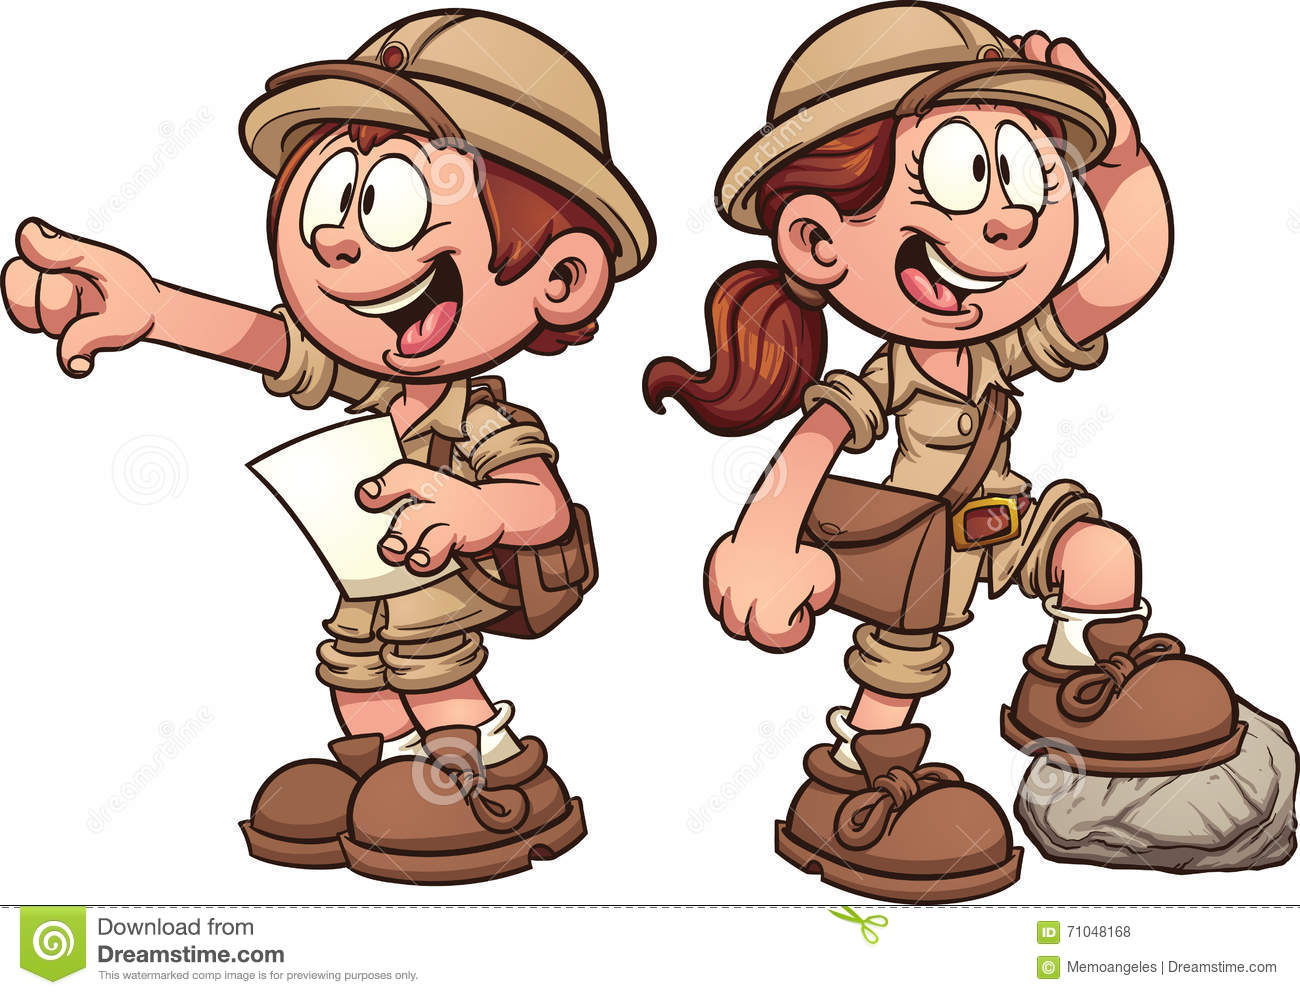 Kid explorer clip art.